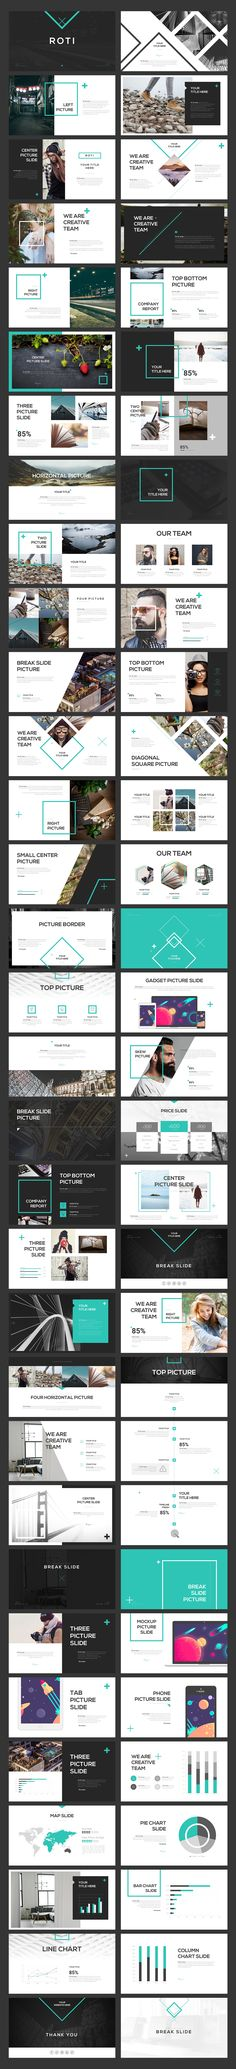 ROTI Keynote Template by Angkalimabelas on @creativemarket